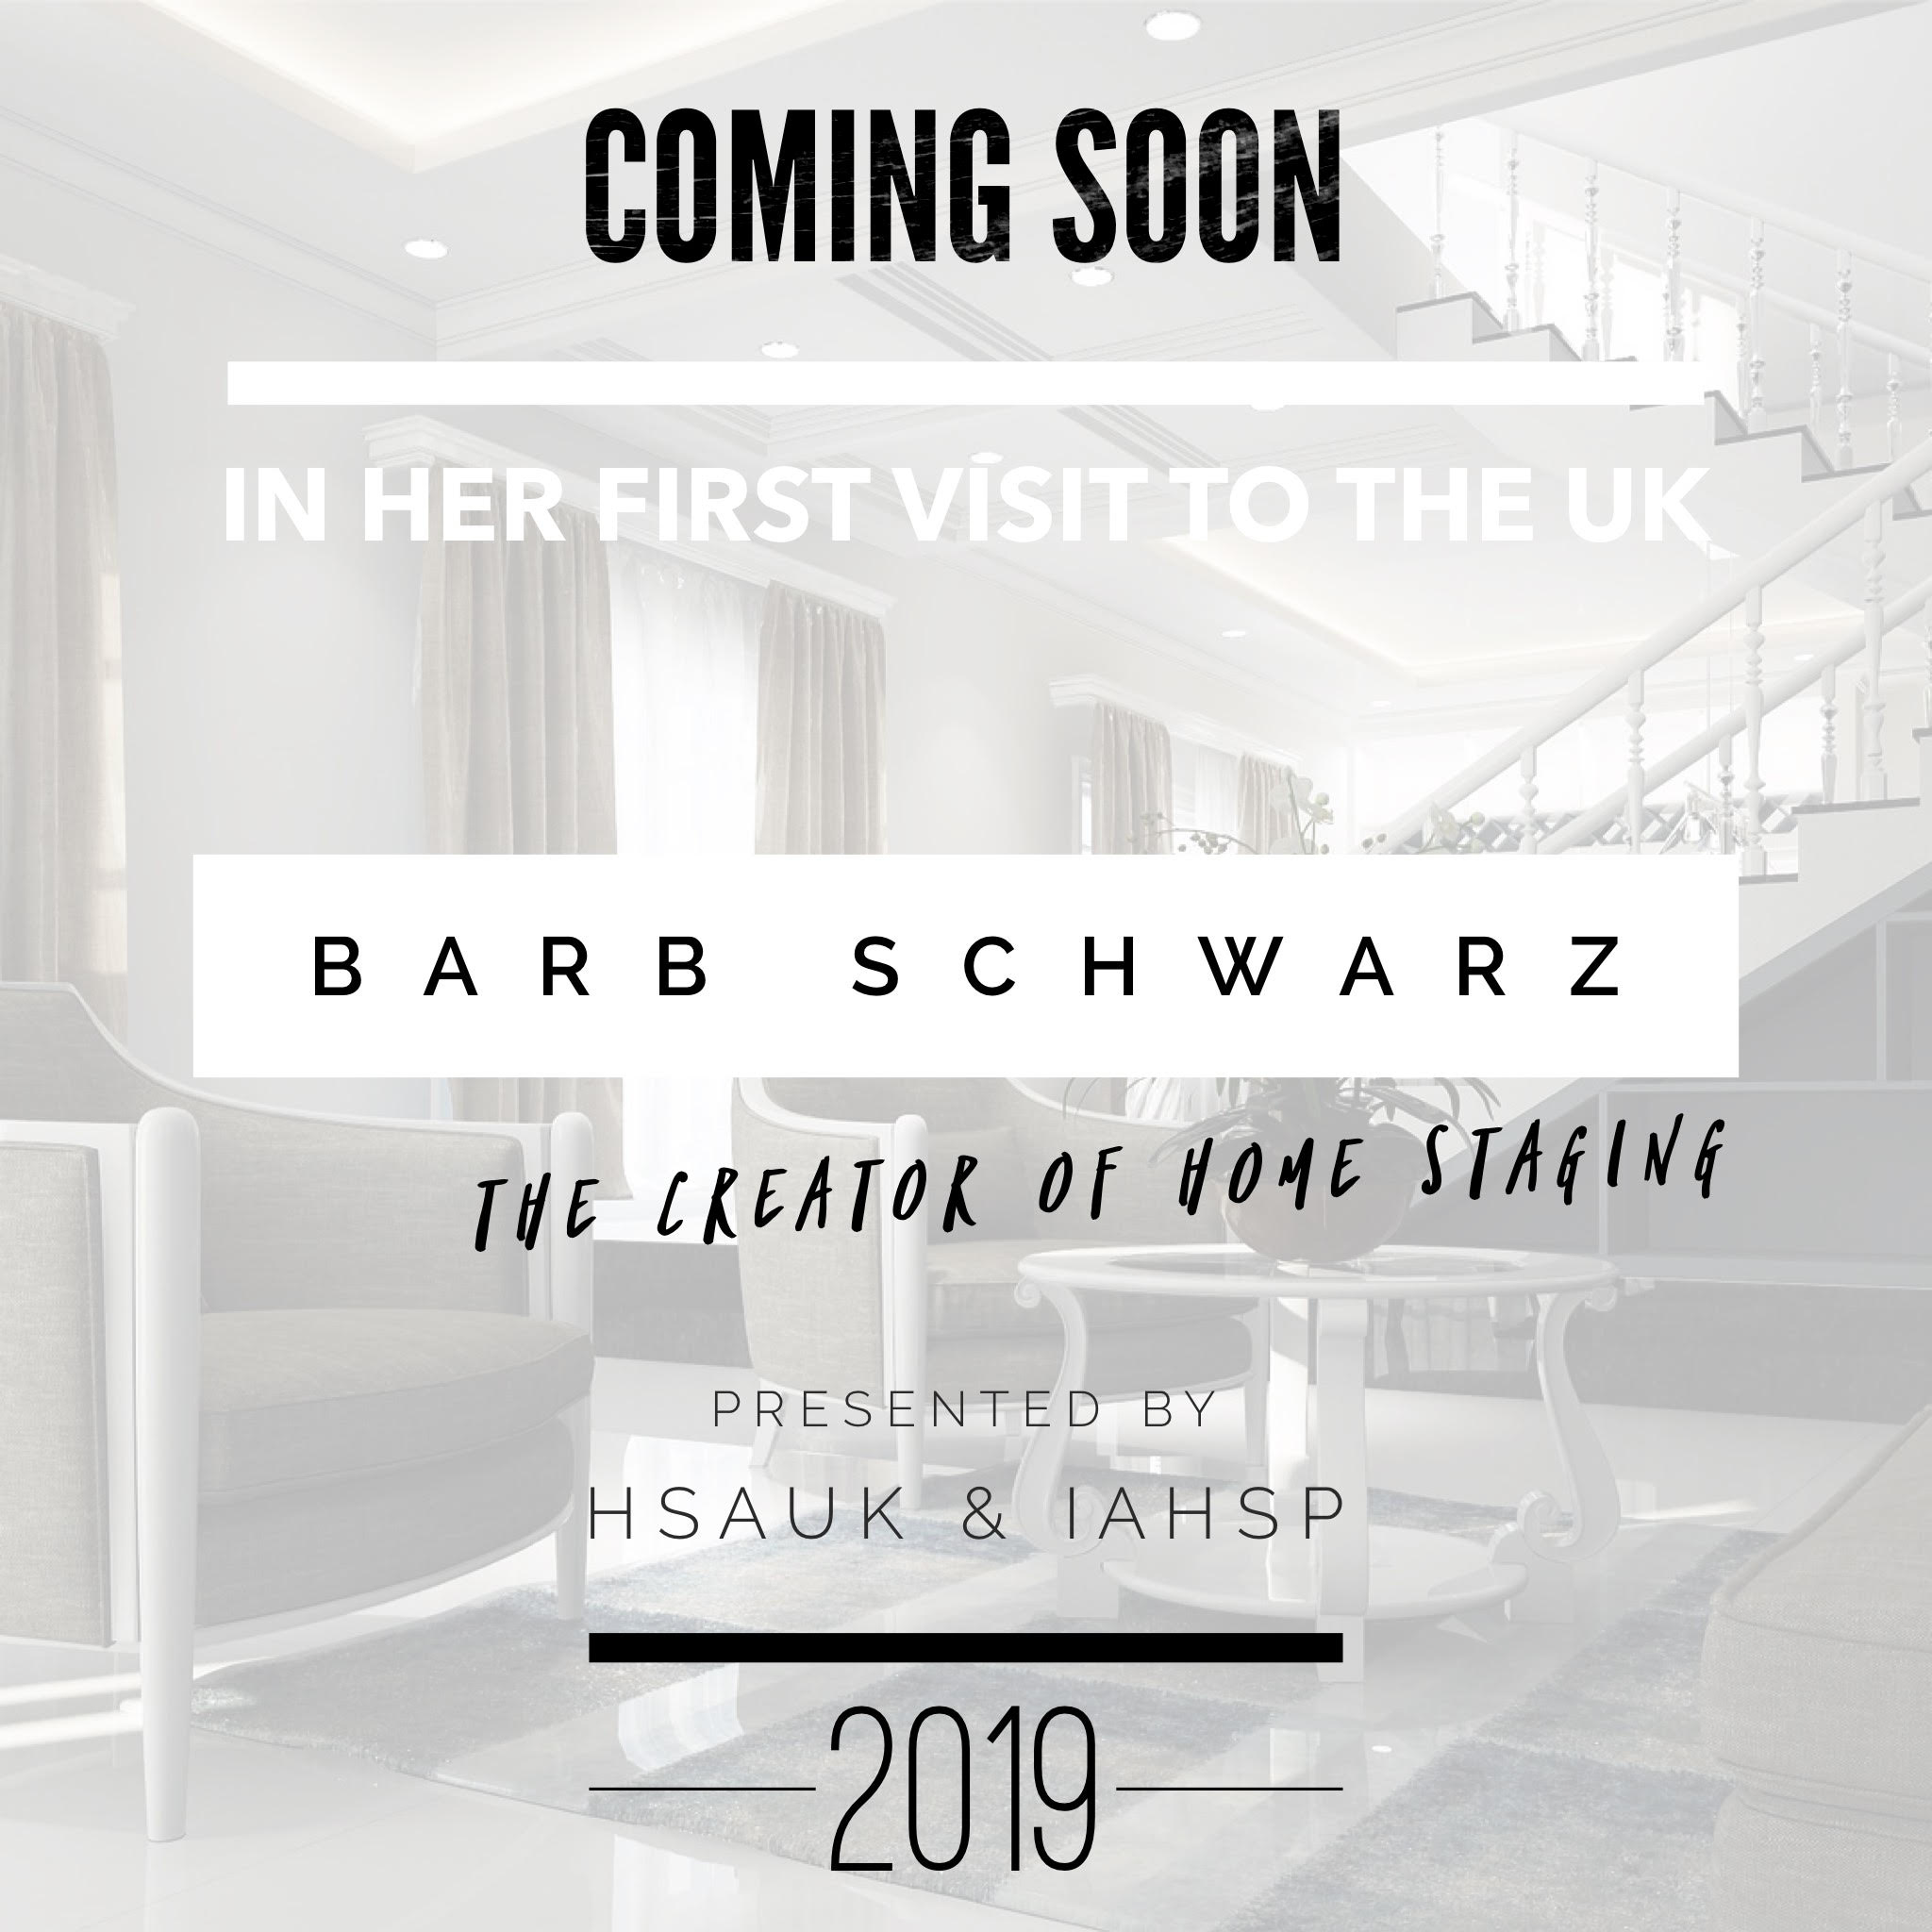 Bringing to you the Creator of Home Staging, Barb Schwarz